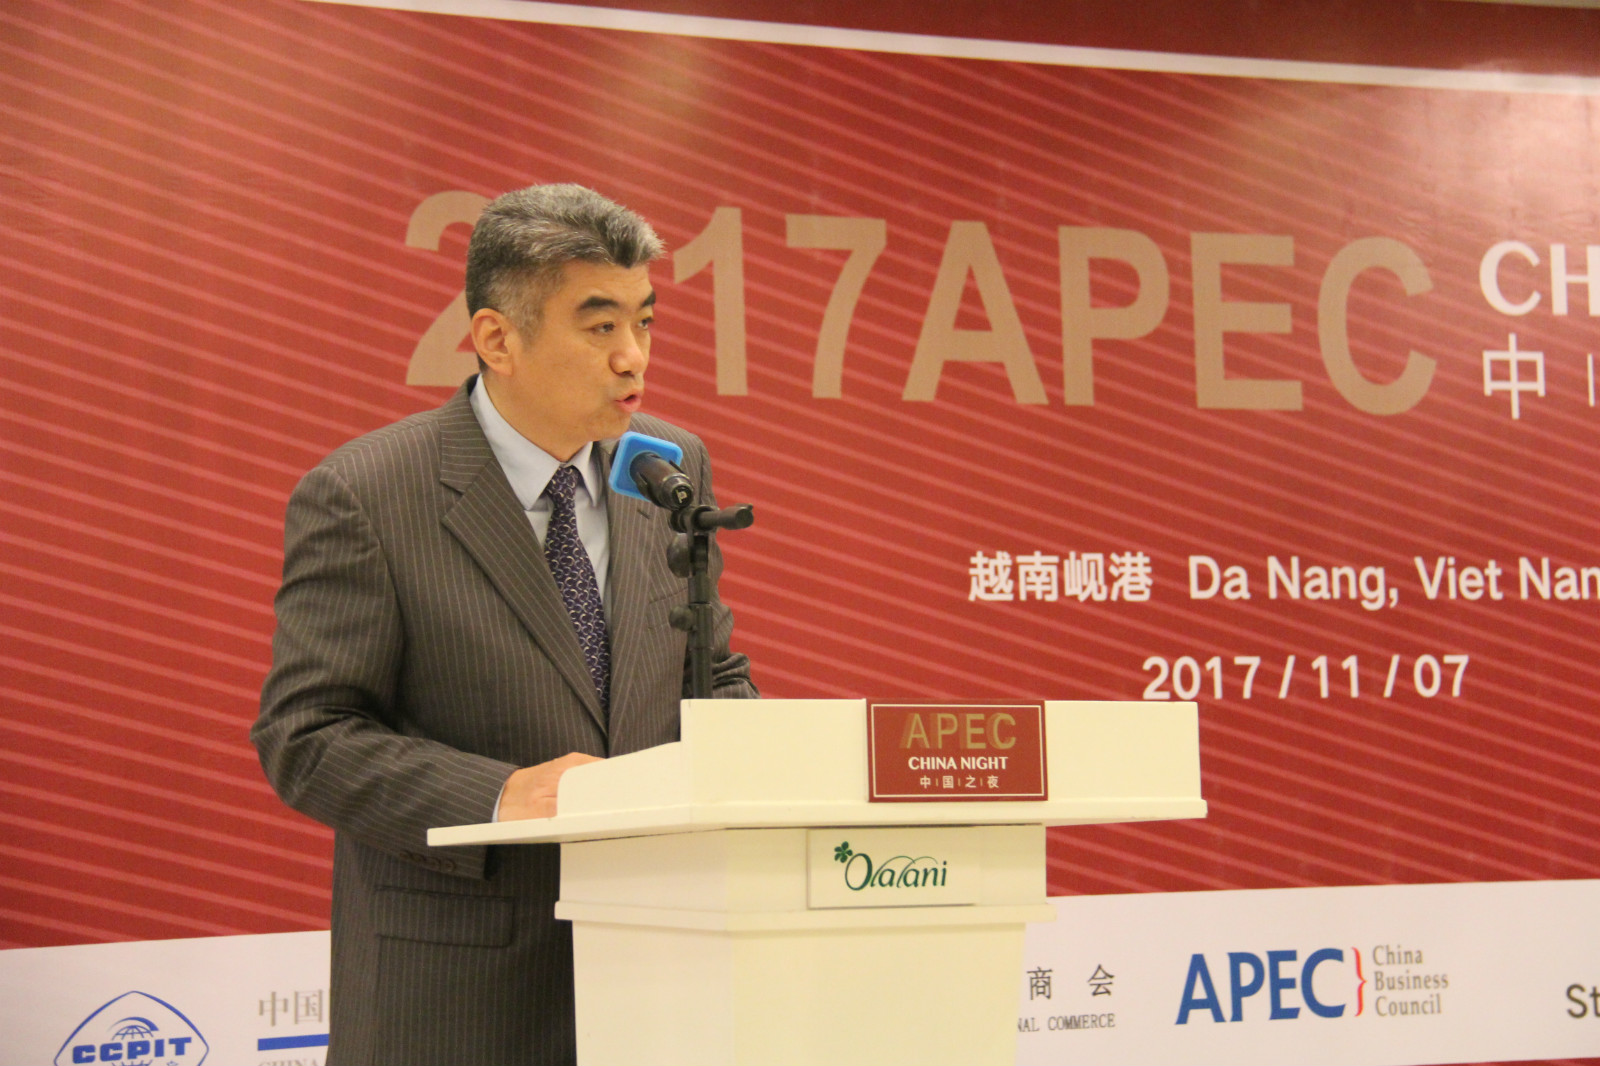 APEC Vietnam 2017 witnesses China growing influence